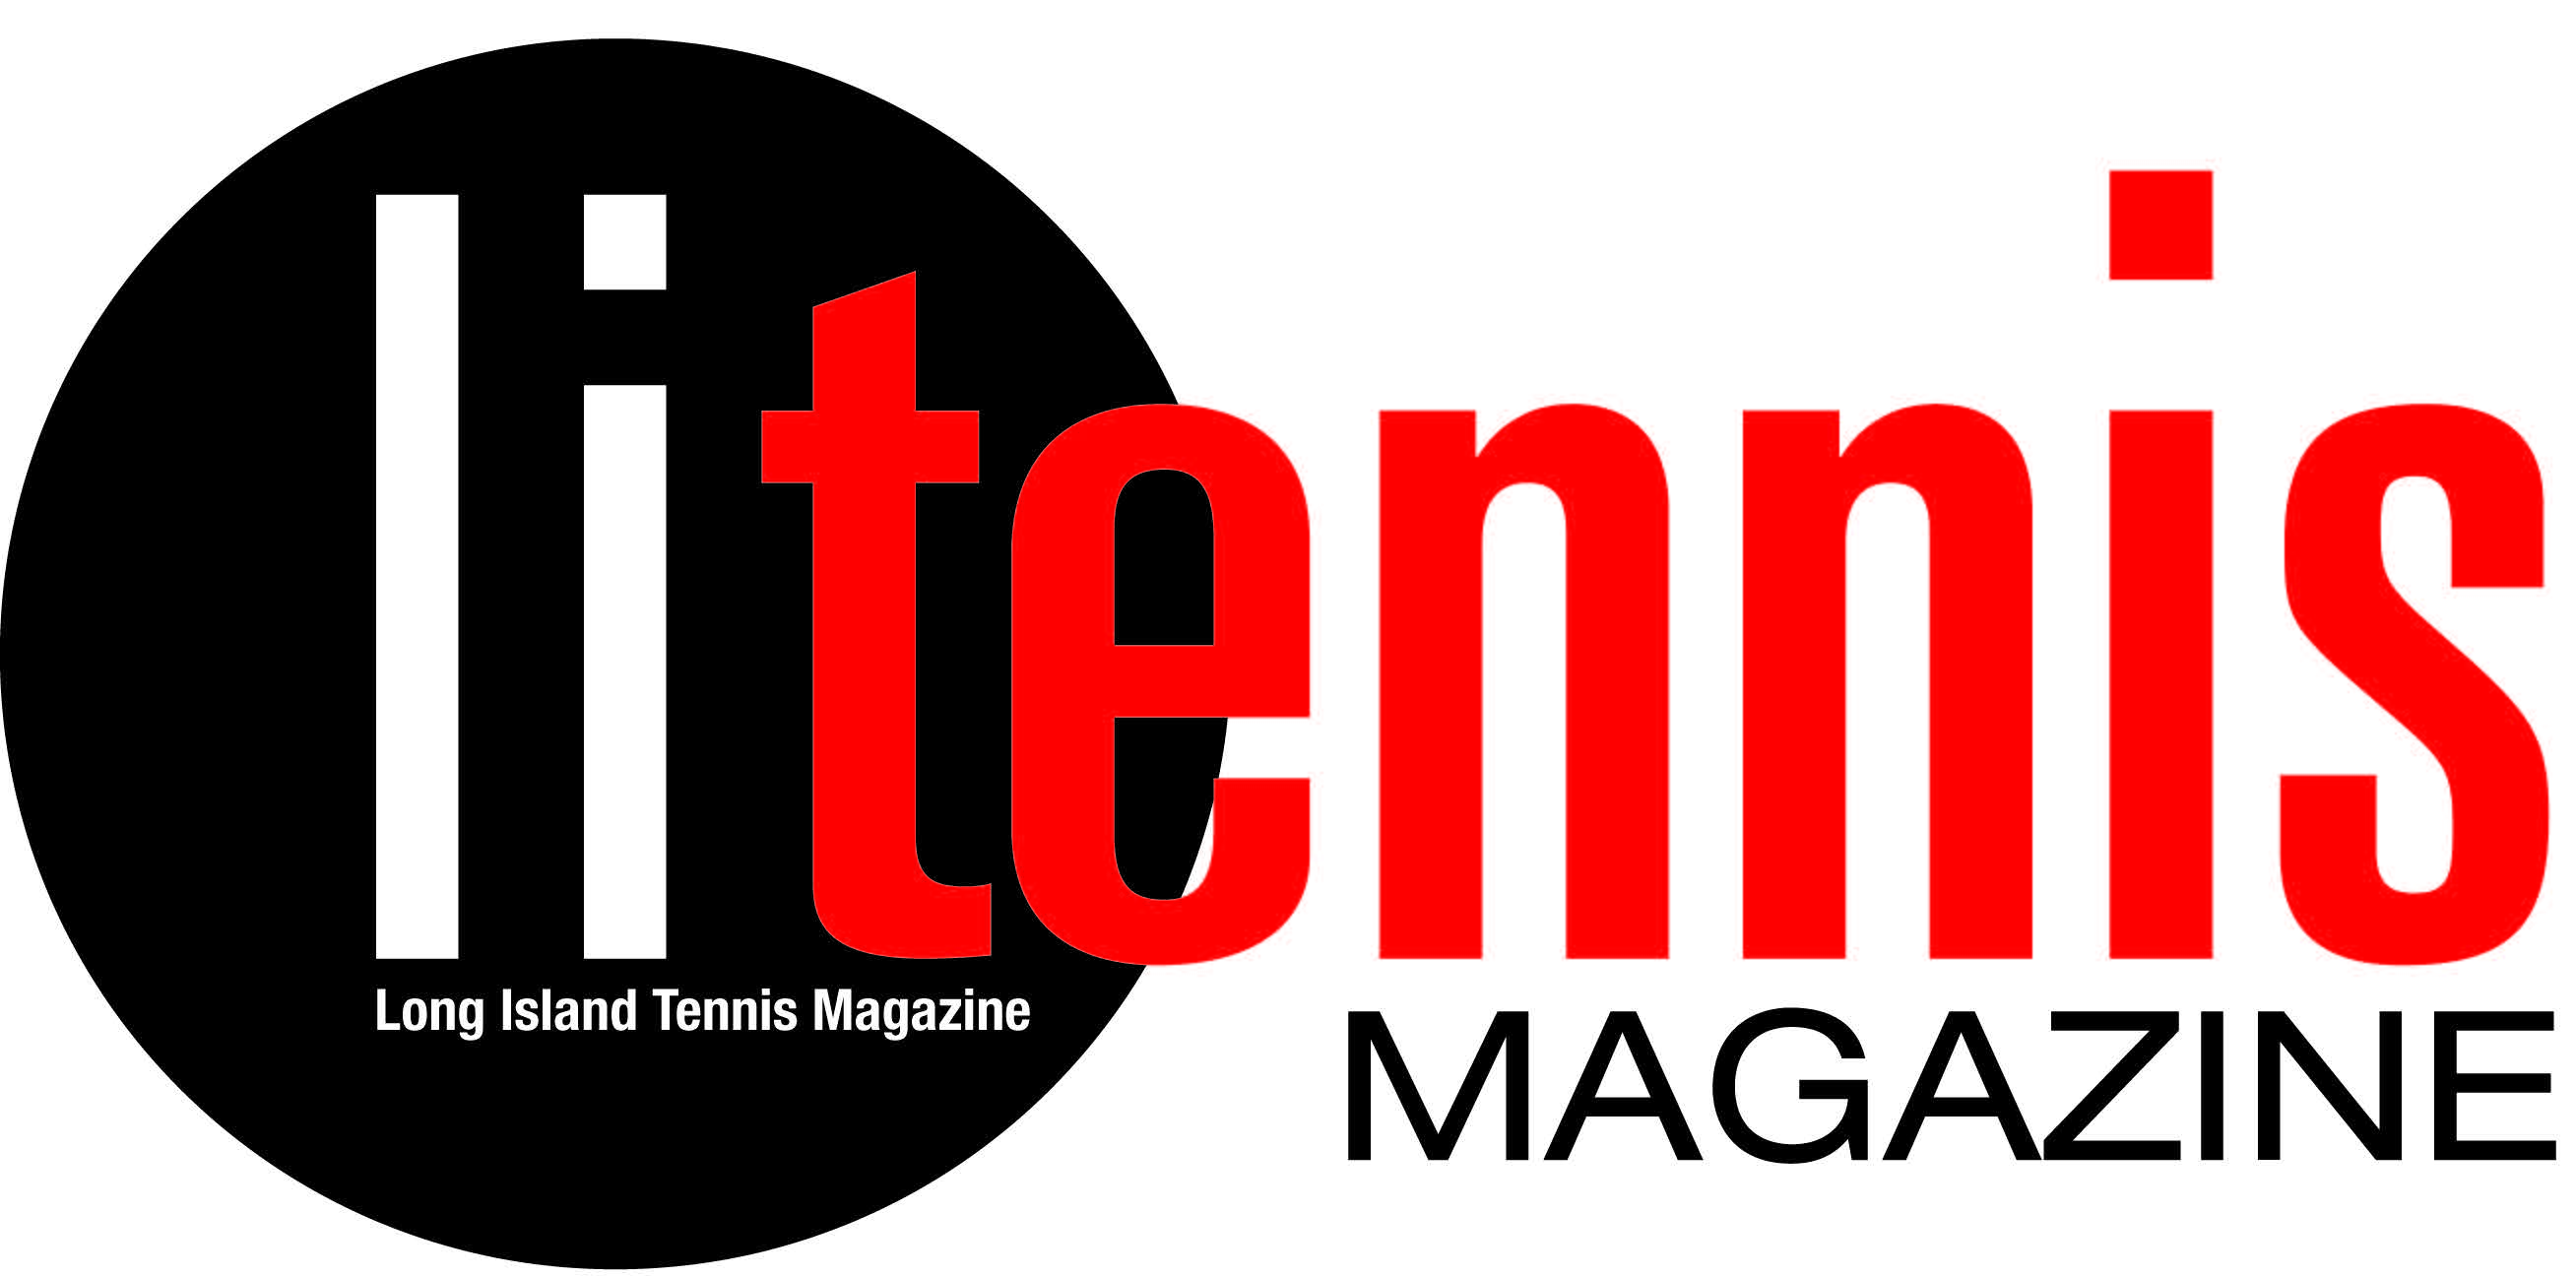 Long Island Tennis Magazine